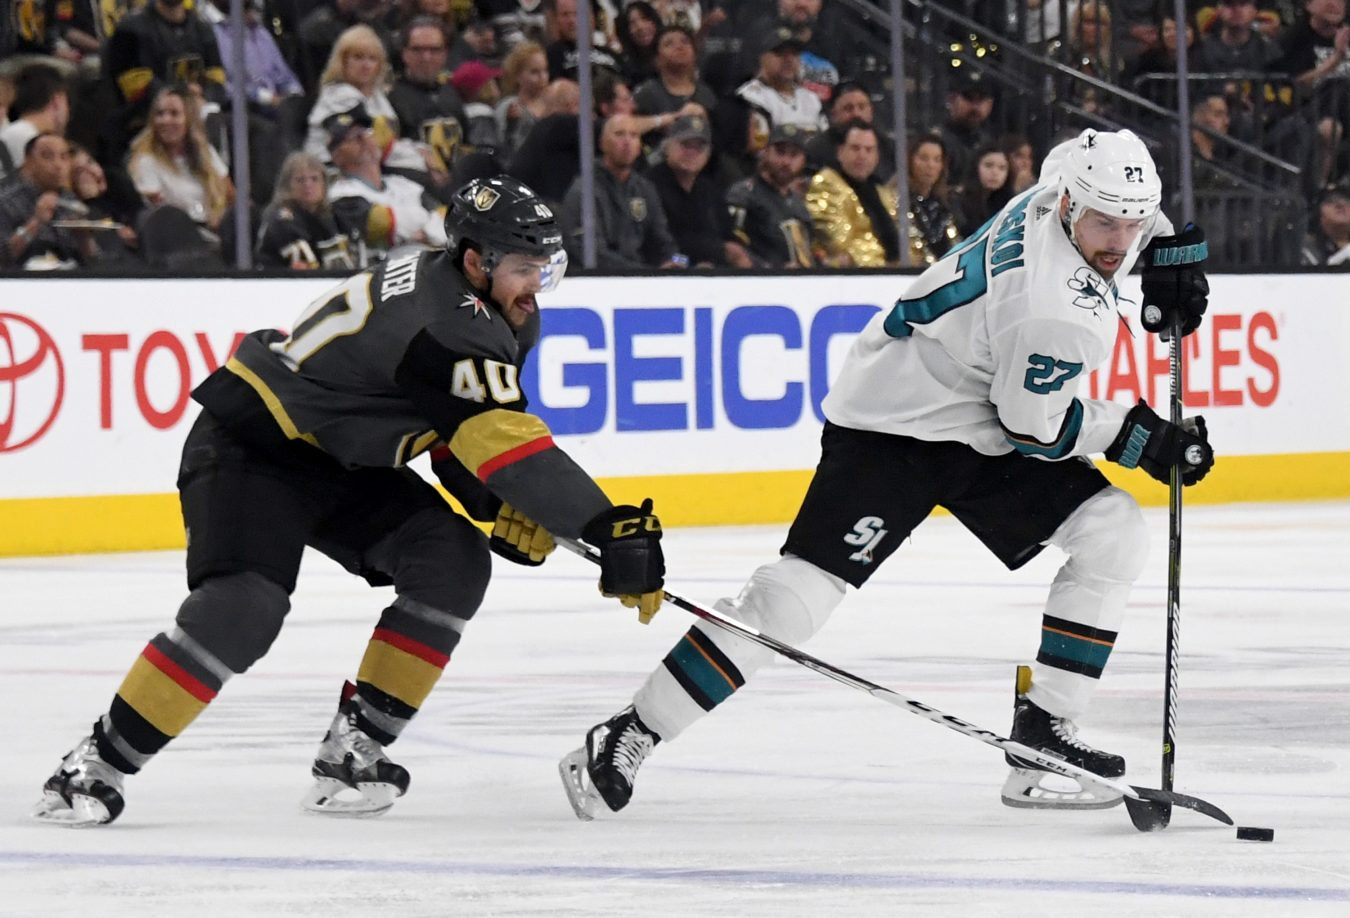 Playoff Preview: Golden Knights vs Sharks - The Point Data-driven